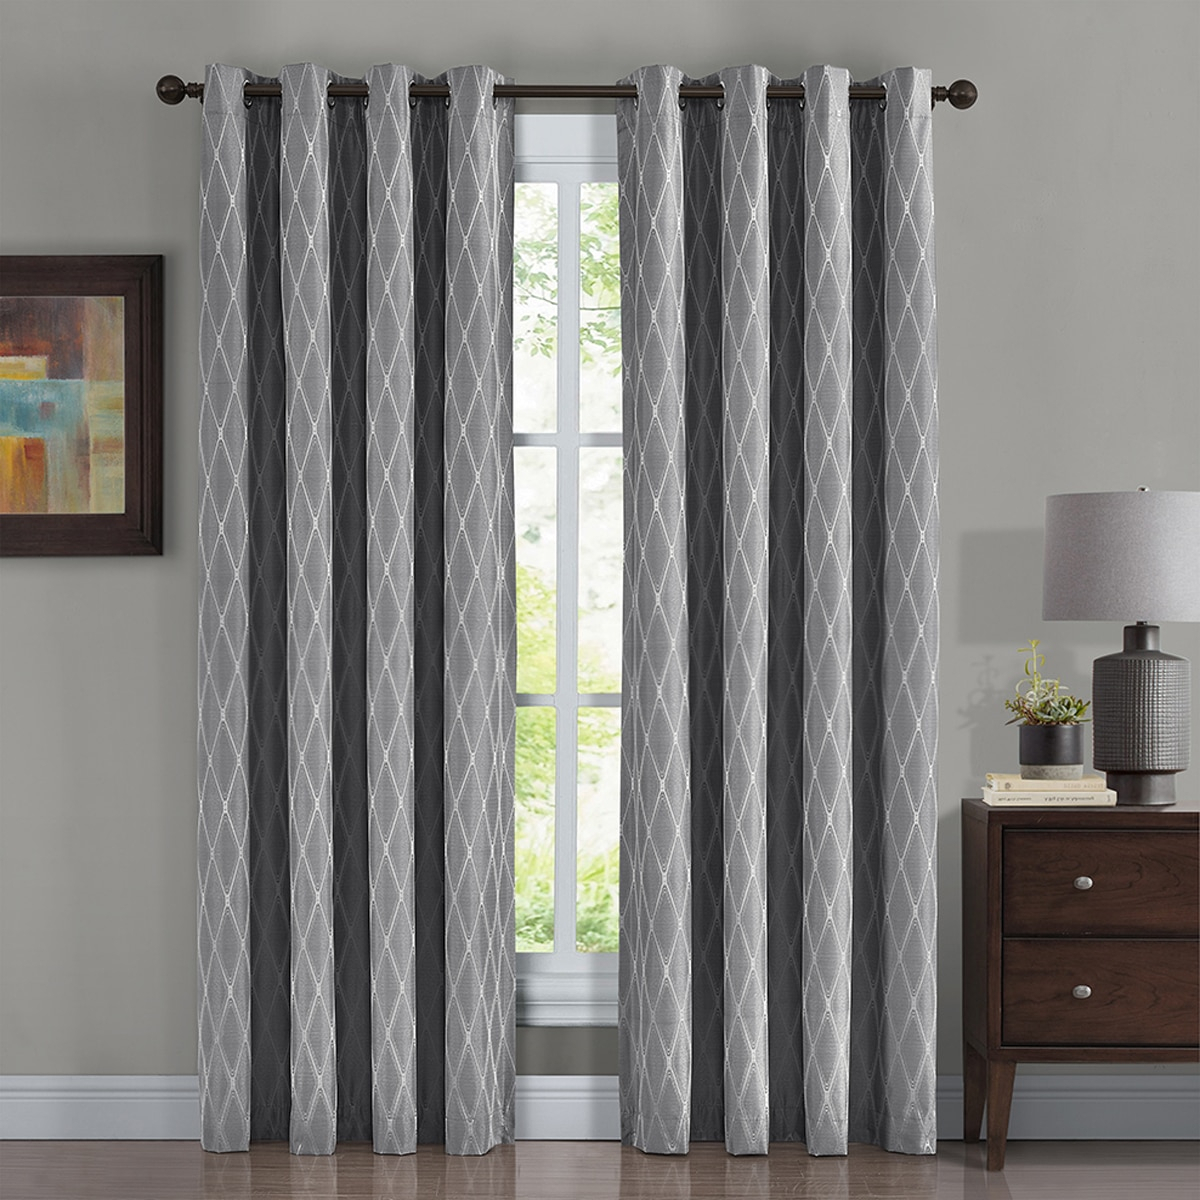 Pair Victoria 100% Blackout Curtain Panels Jacquard Thermal Insulated ( Set Of 2) 108x84 – Gray With Thermal Insulated Blackout Curtain Panel Pairs (View 24 of 30)